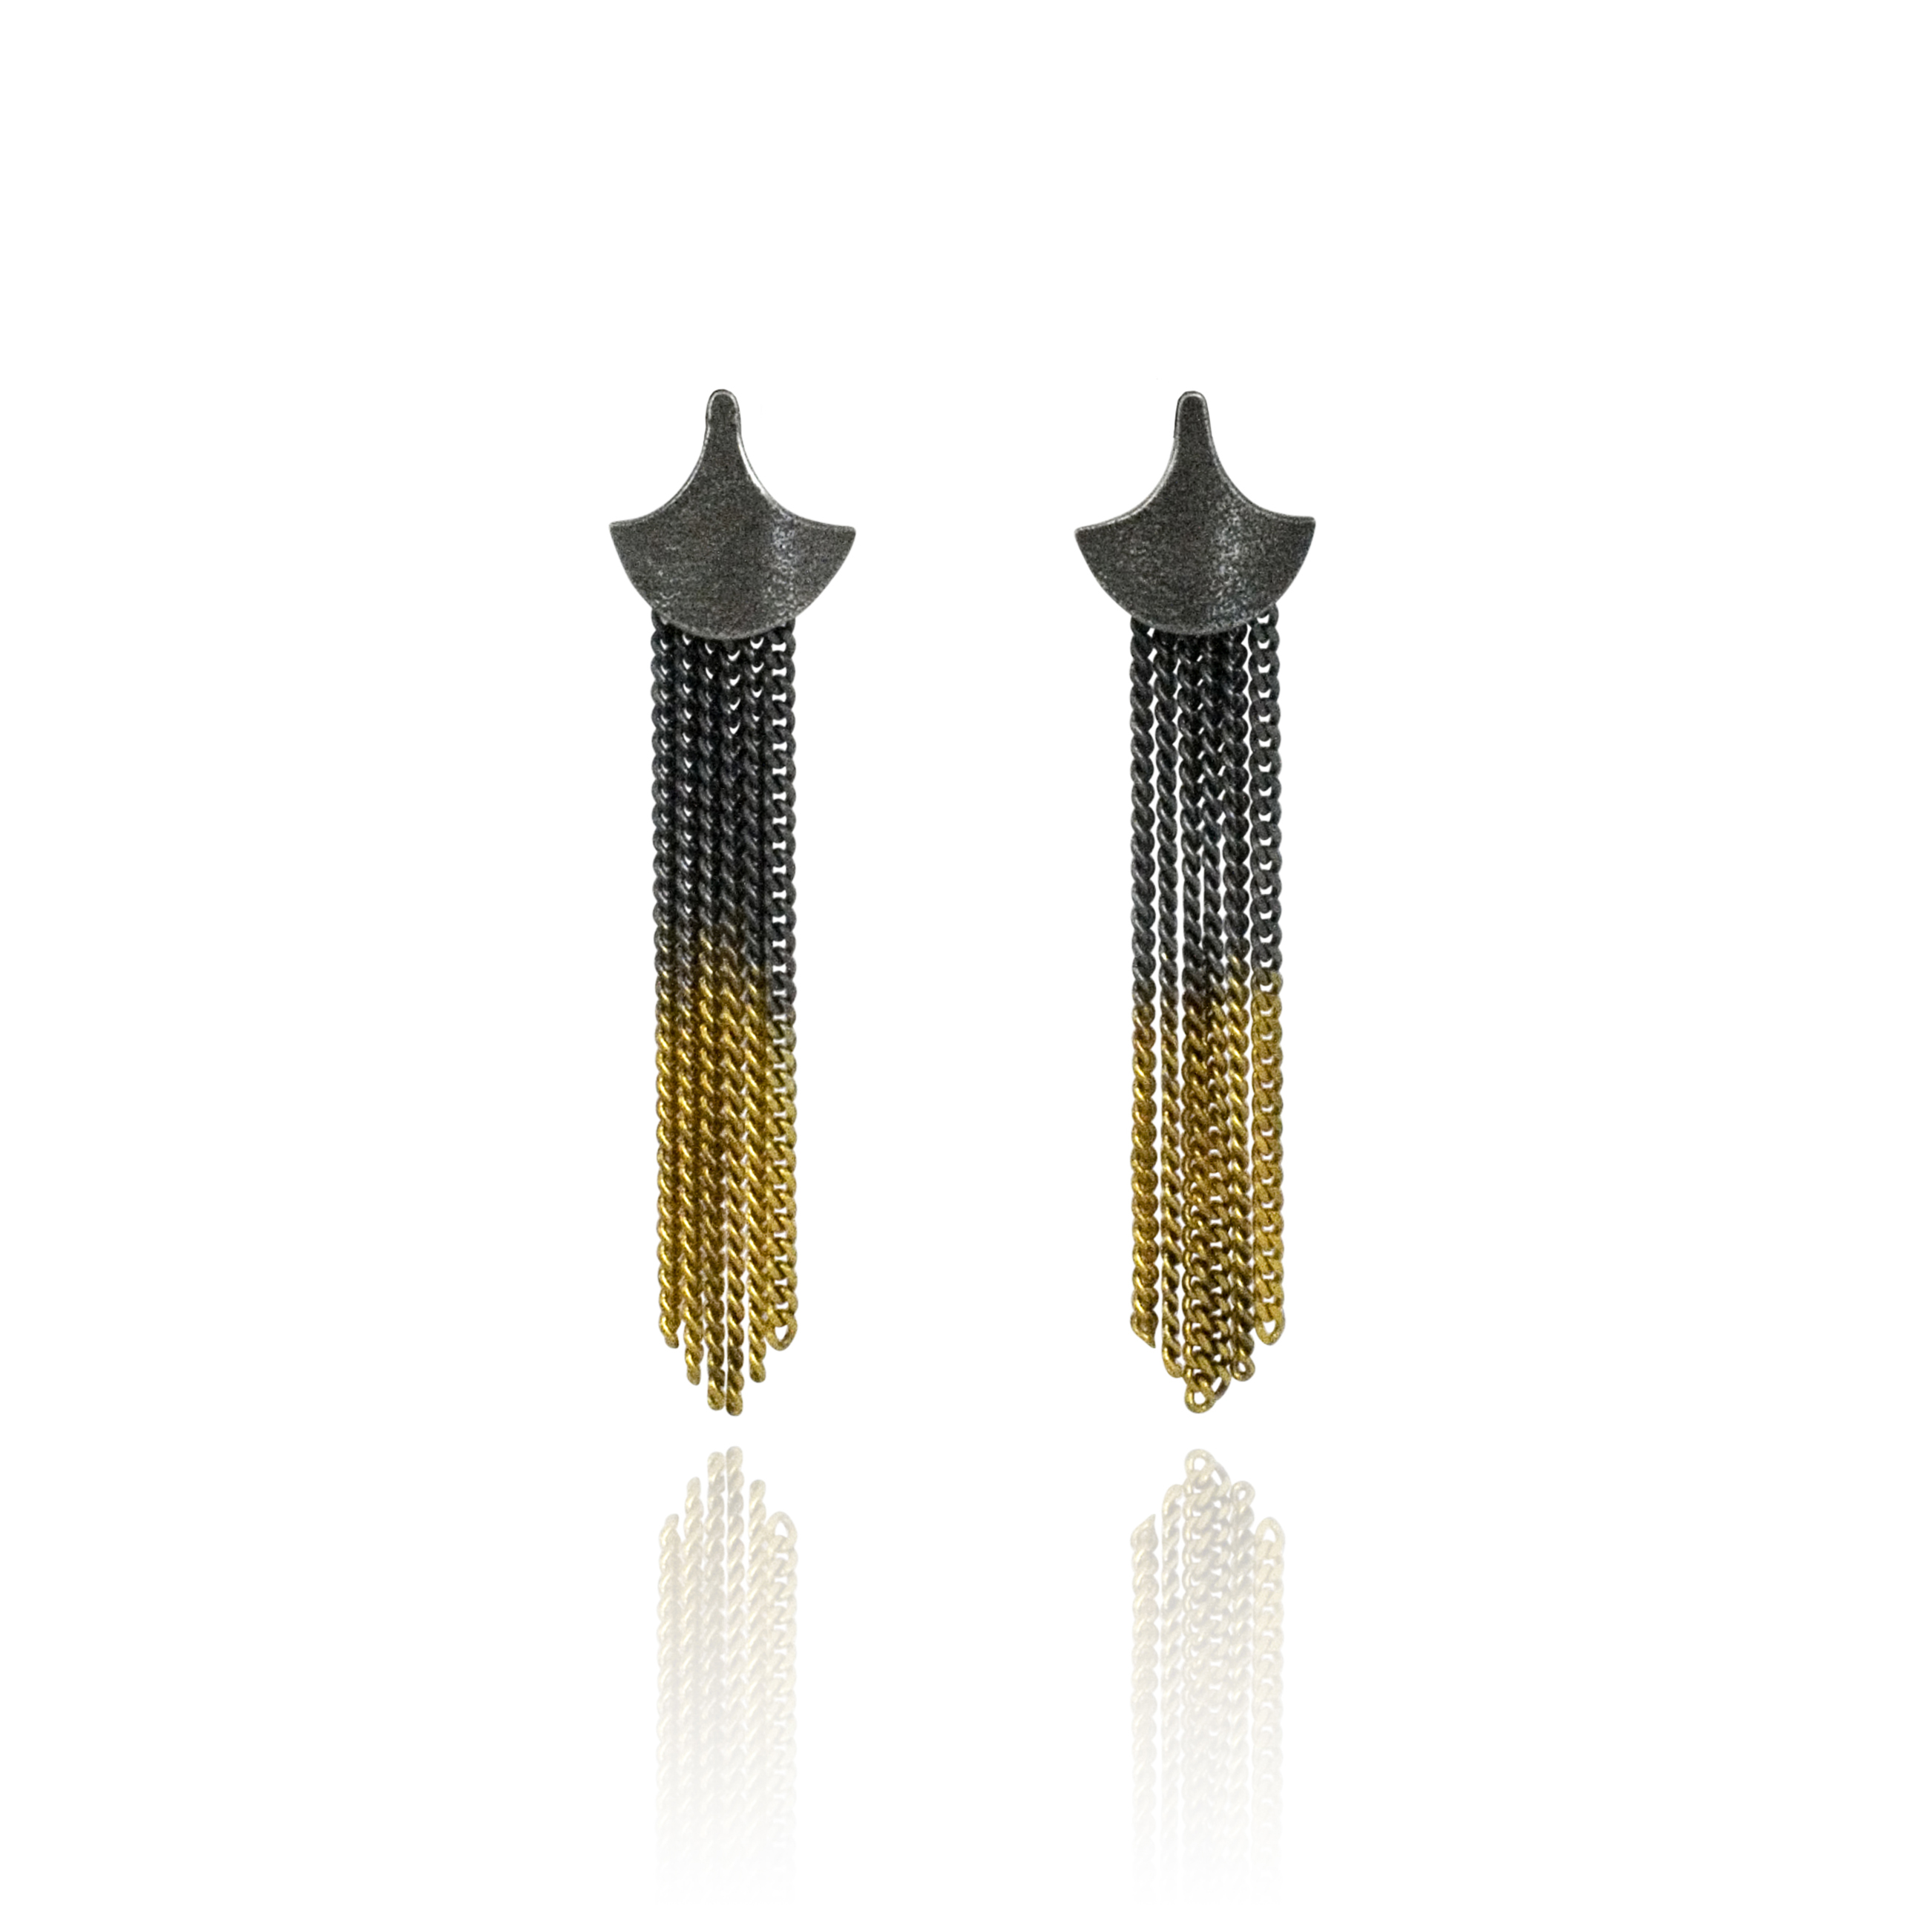 Cara Tonkin Black Gold Siren Tassel/Stud Earrings